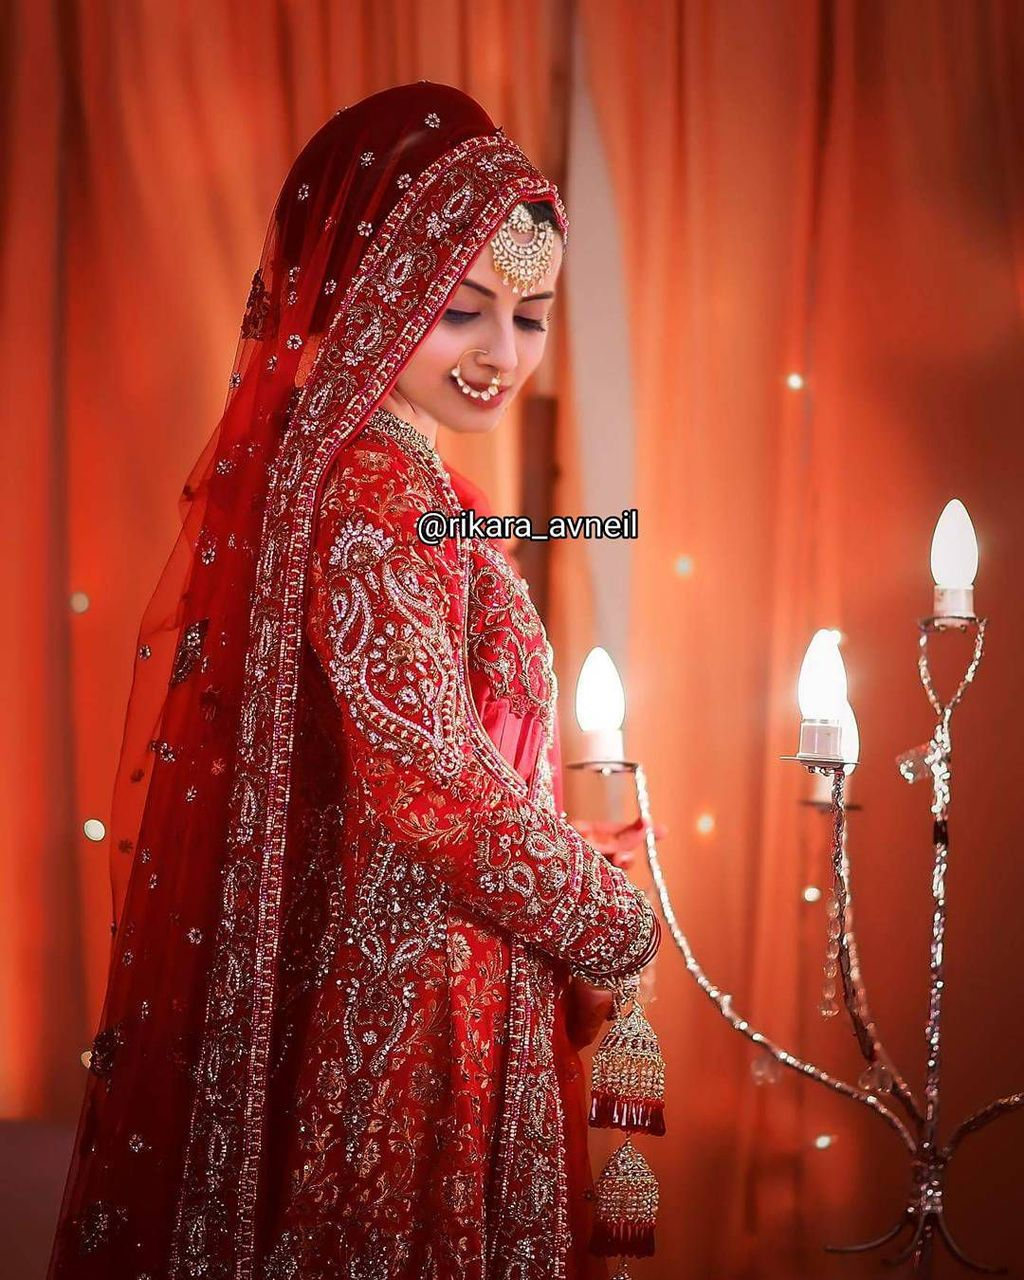 but when the bride entered her sasural's house, anika came downstairs and jhanvi lifted the bride's veil and the face was revealed: